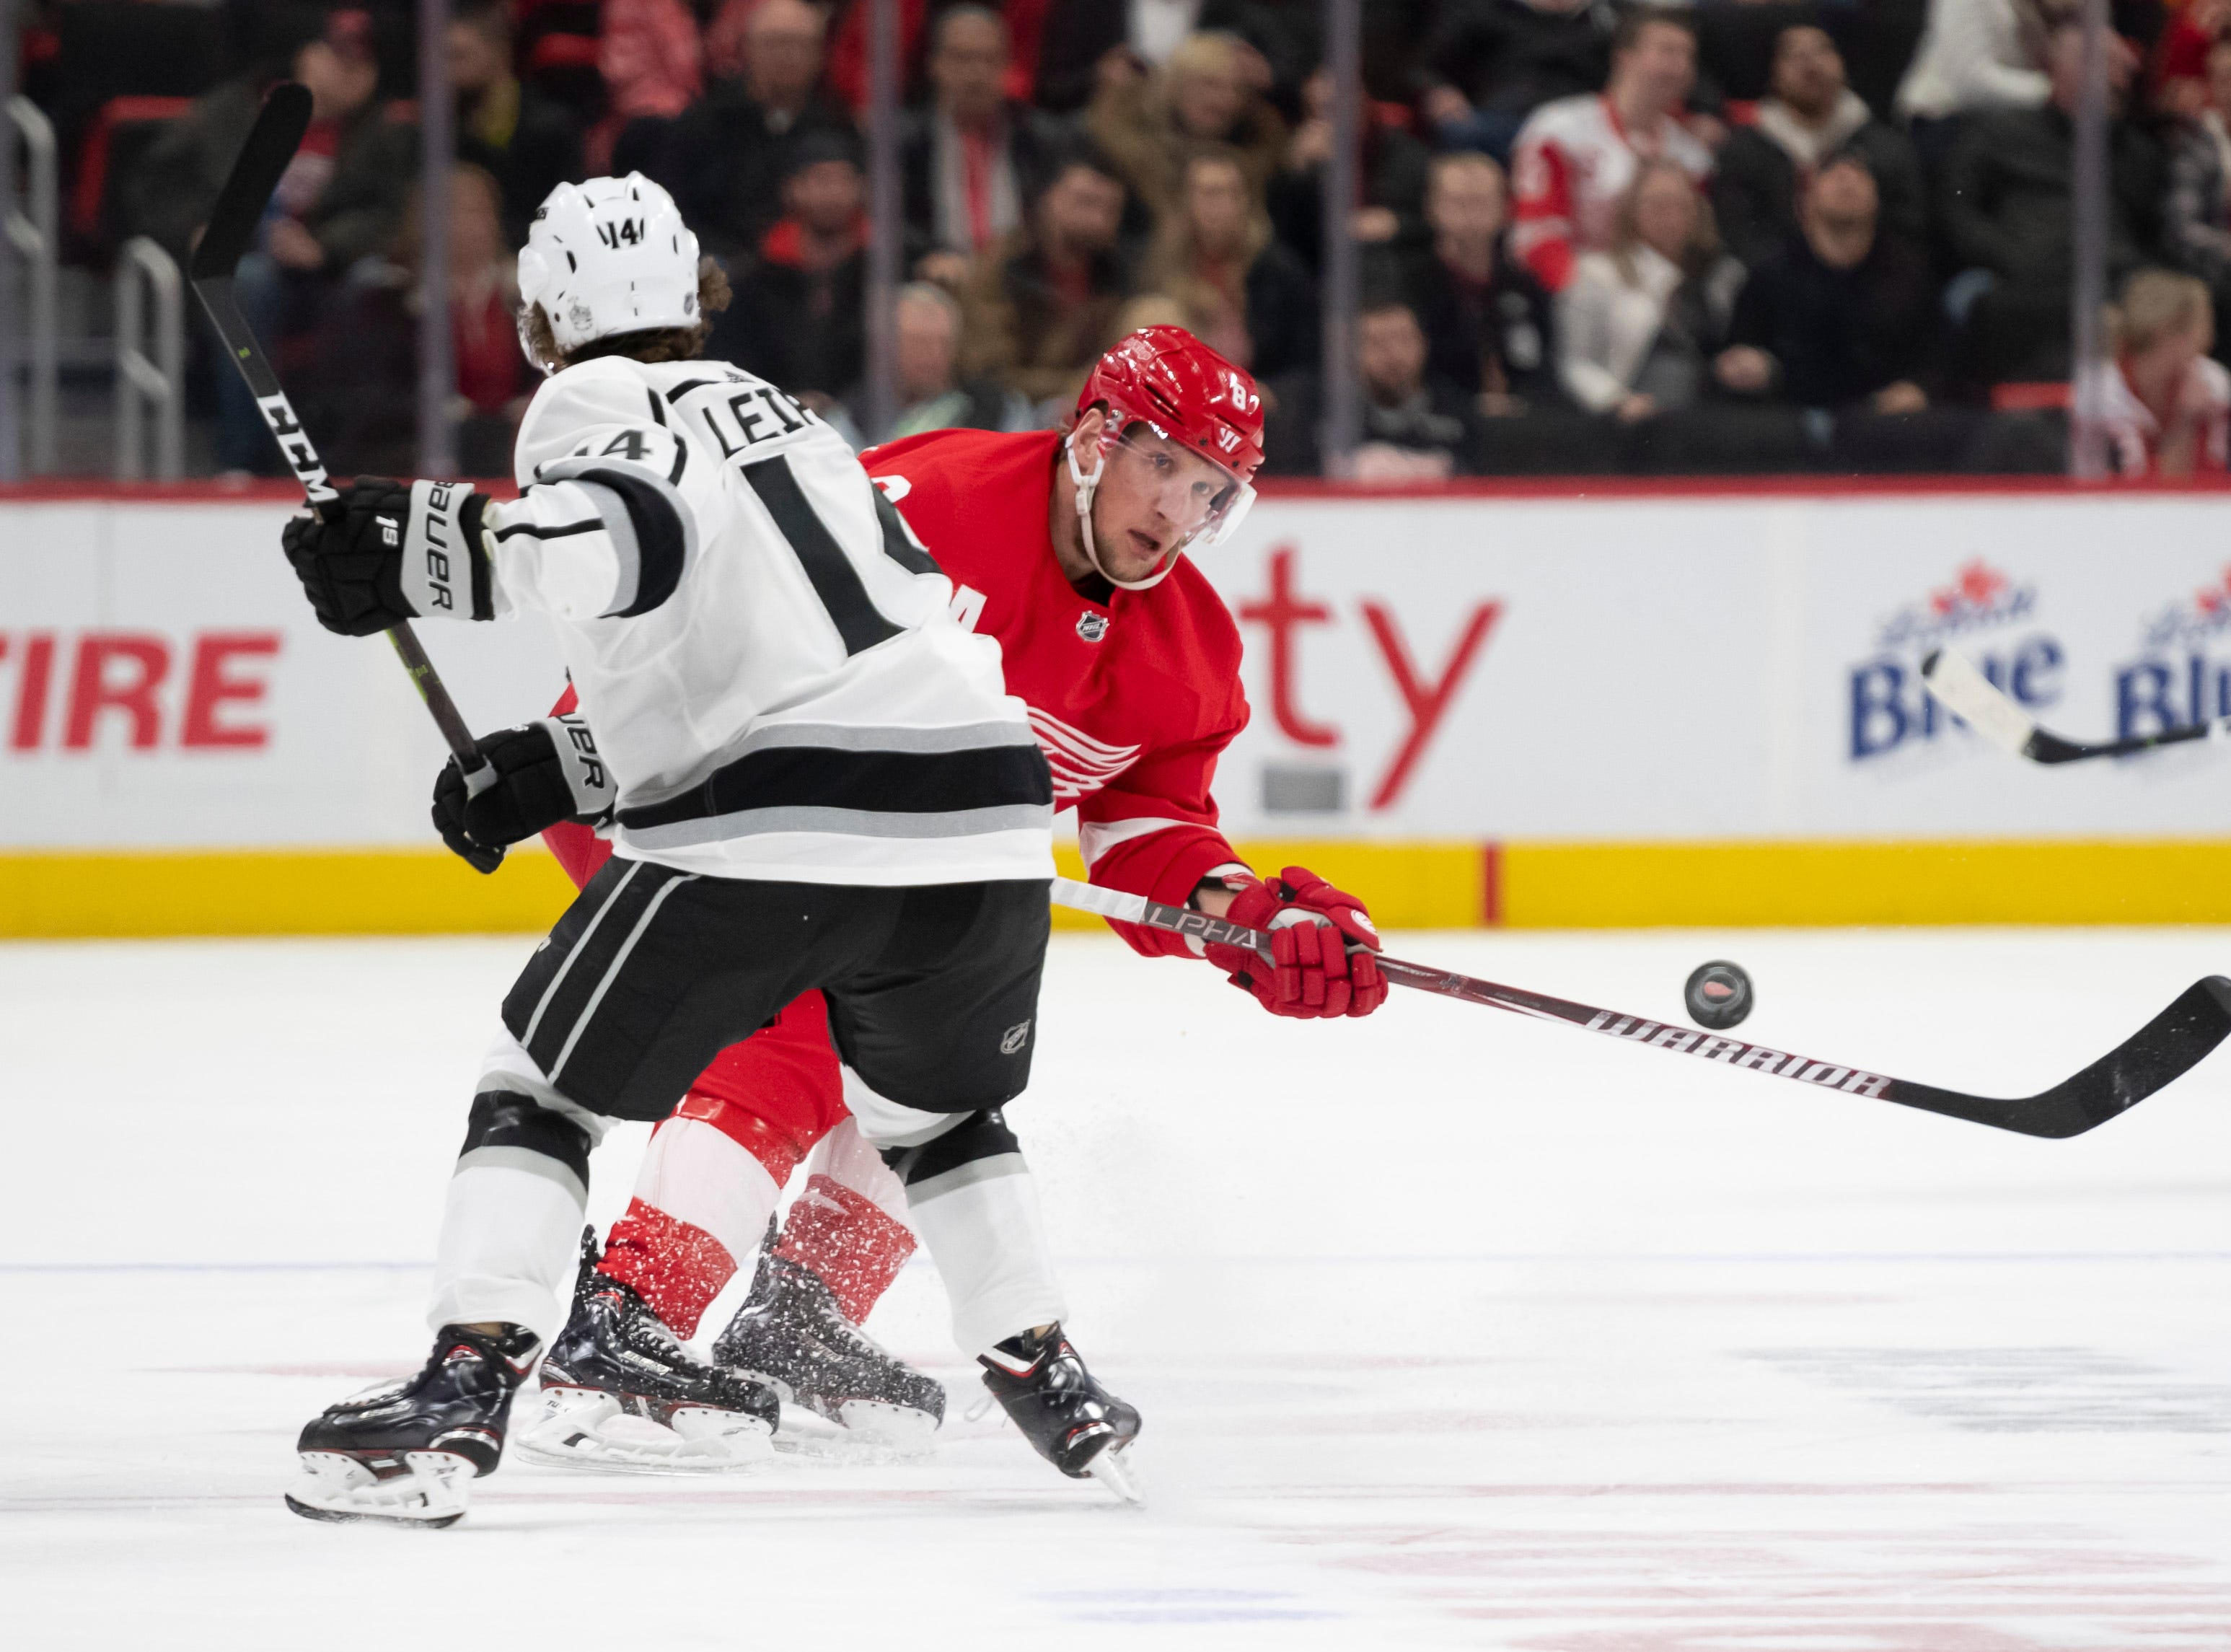 Detroit left wing Justin Abdelkader sends the puck around Los Angeles left wing Brendan Leipsic in the third period.